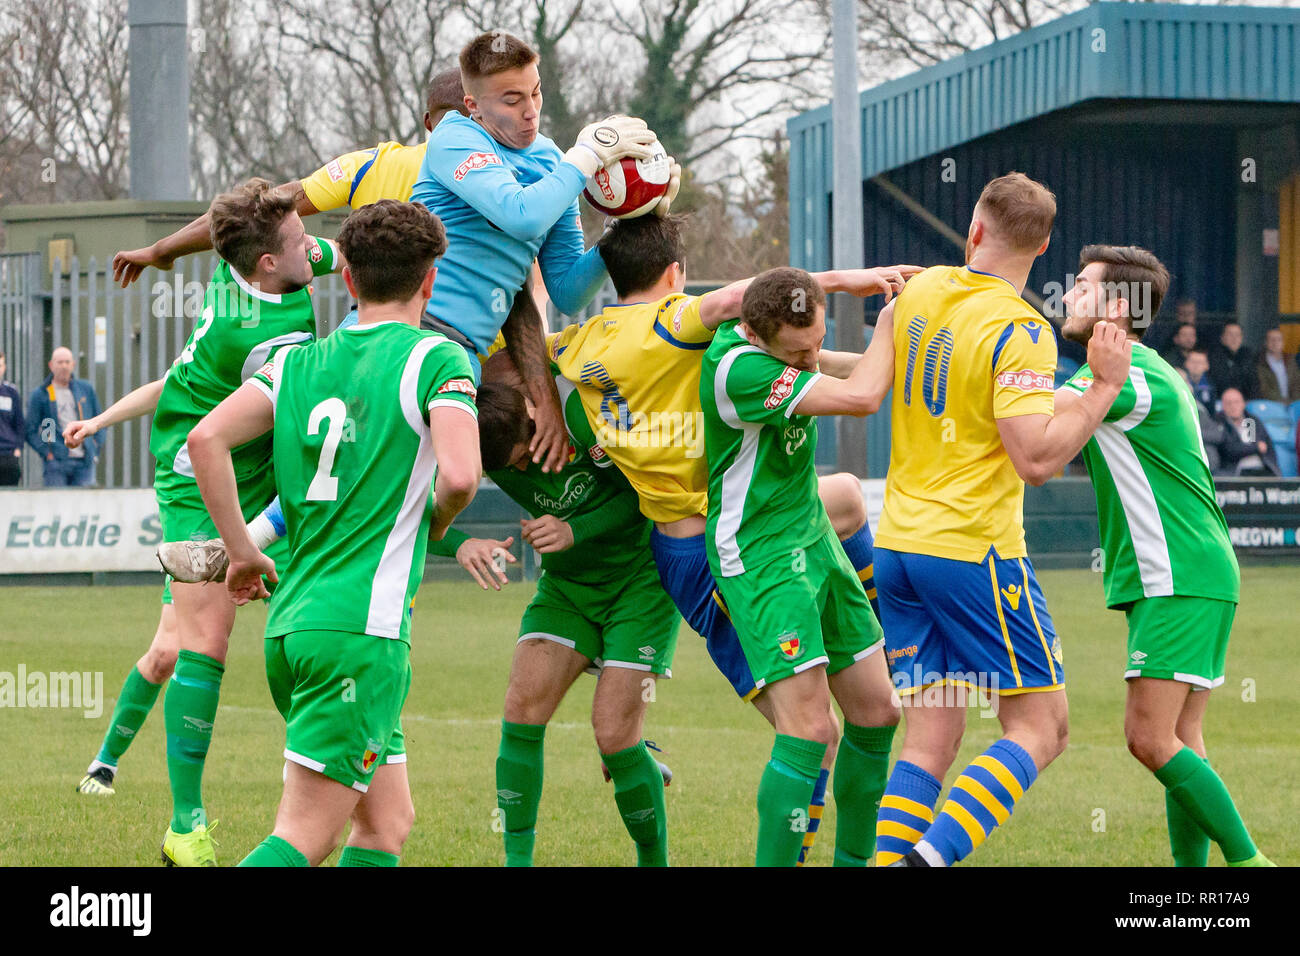 Finnish goalkeeper, William Jaaskelainen, grabs the ball in a goalmouth scrabble when Warrington Town FC host Nantwich Town FC in a football match in  - Stock Image